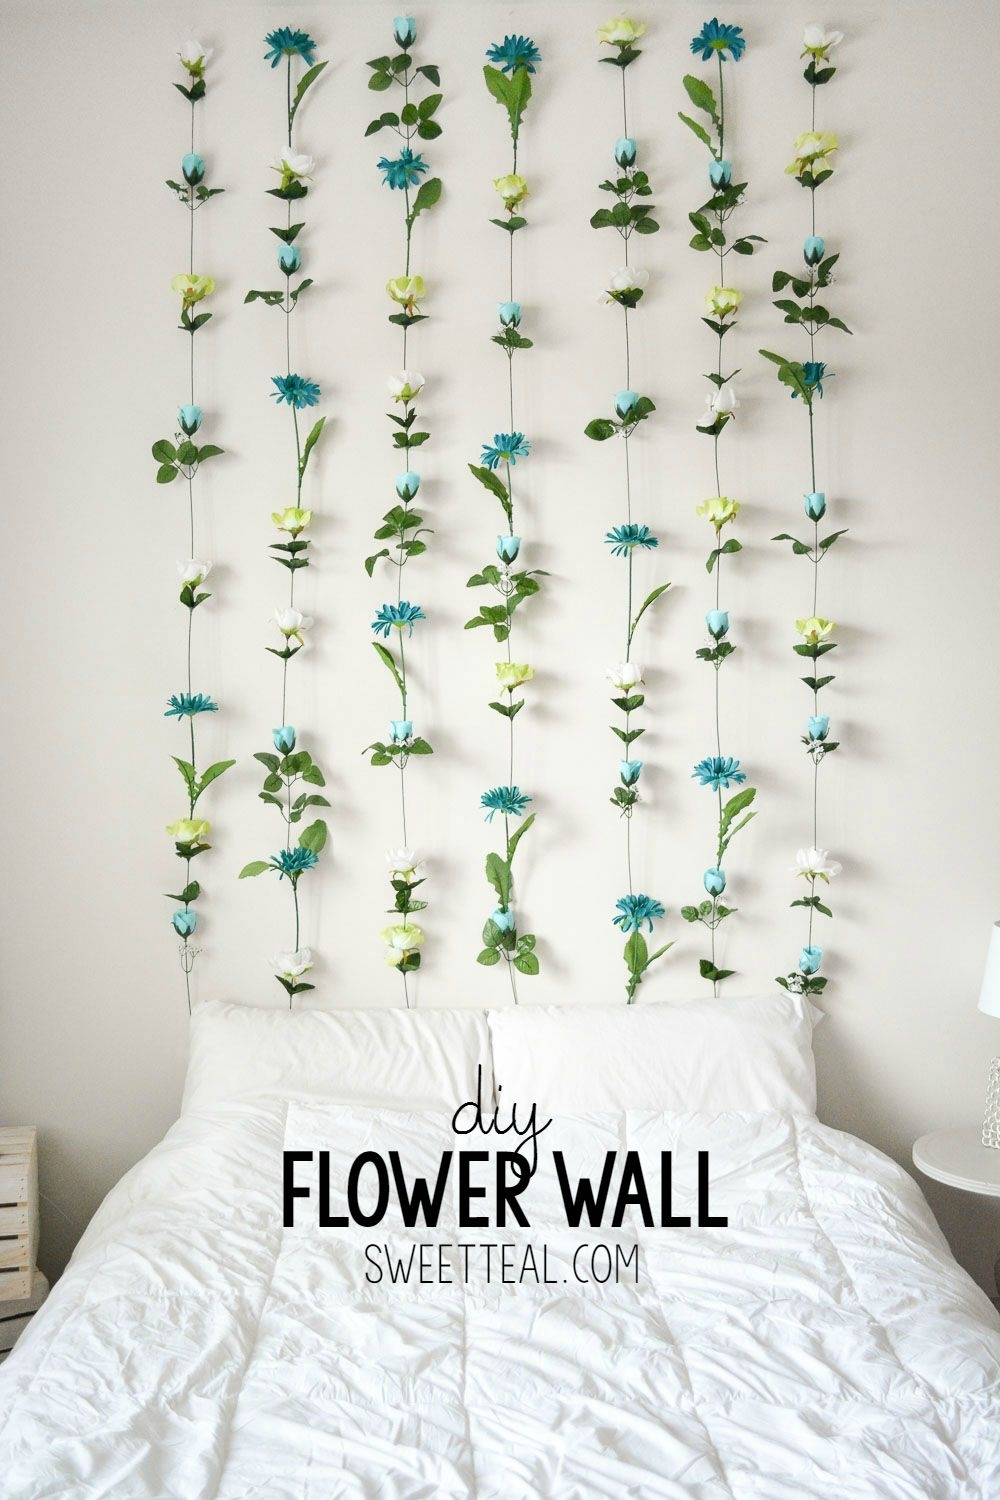 Diy Flower Wall // Headboard // Home Decor | Wall Headboard, Diy with regard to Most Recently Released Flowers Wall Accents